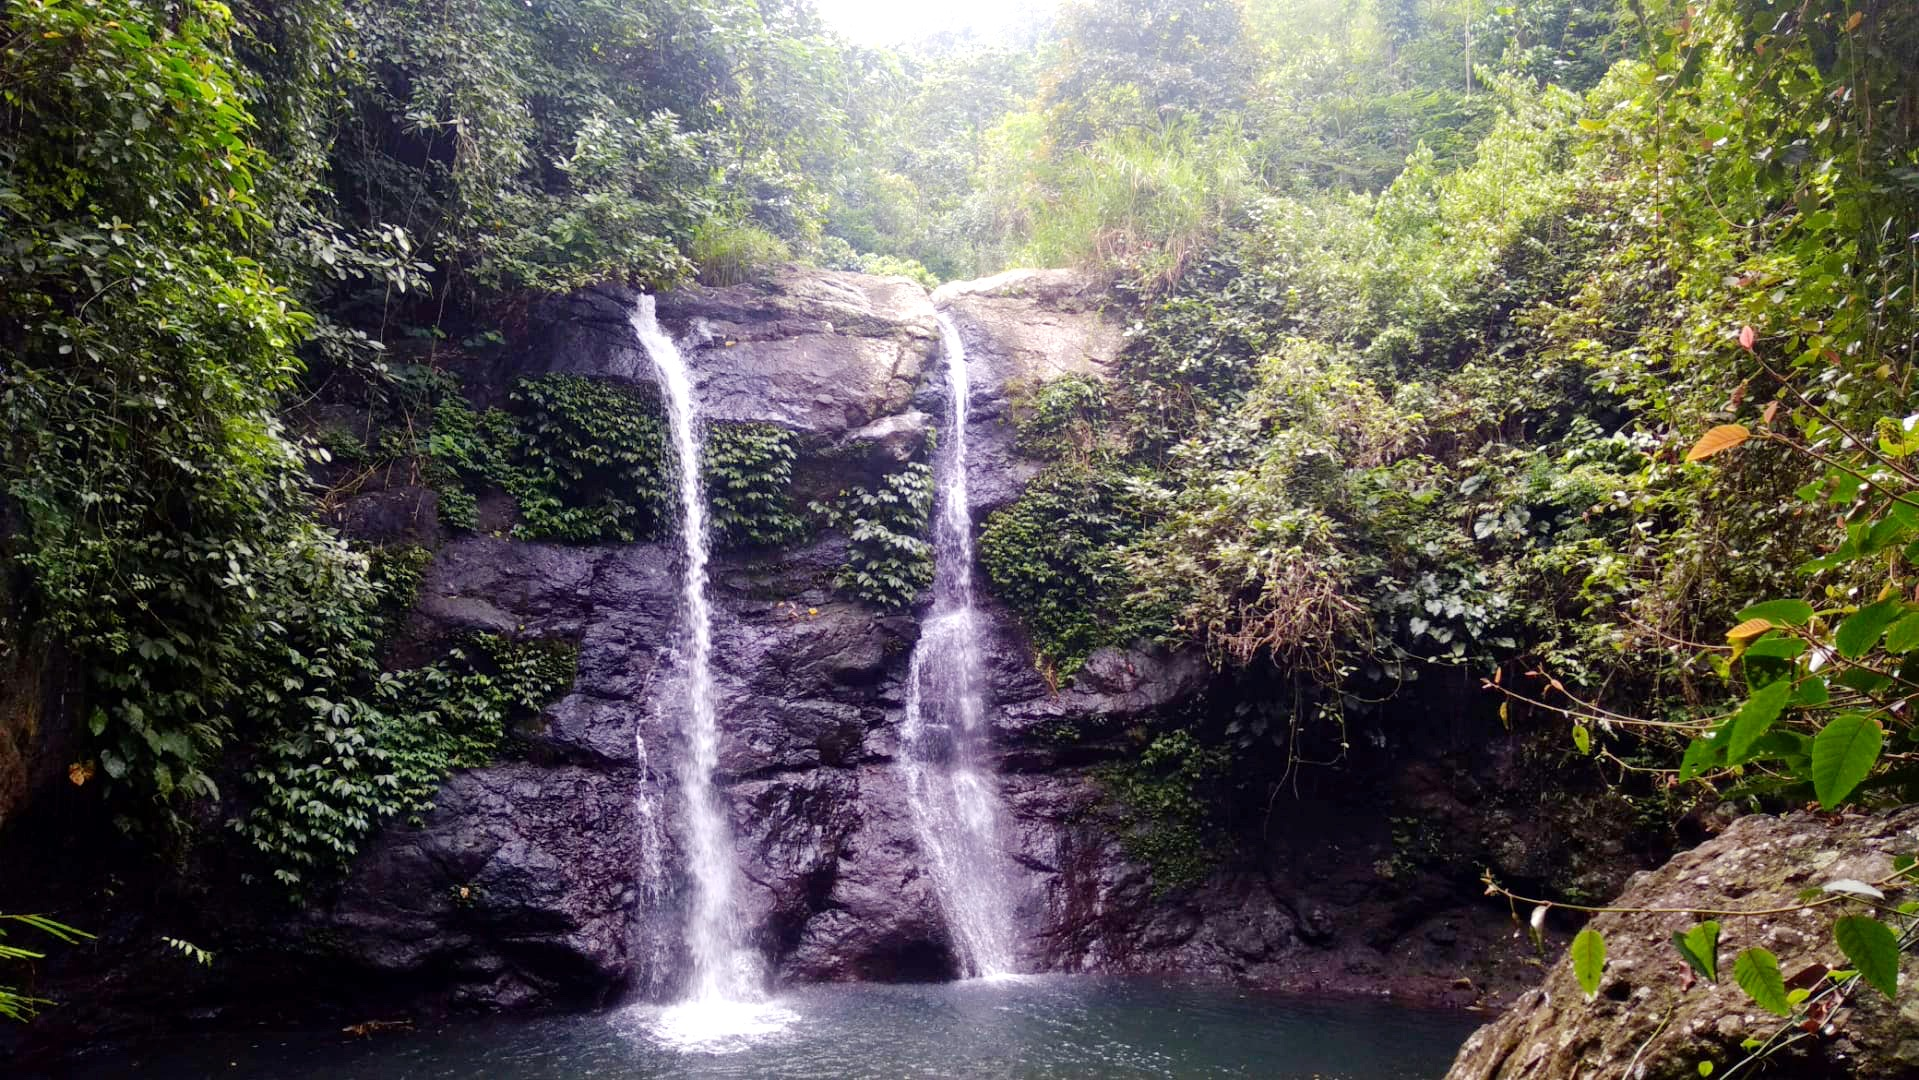 Juwuk Manis waterfall